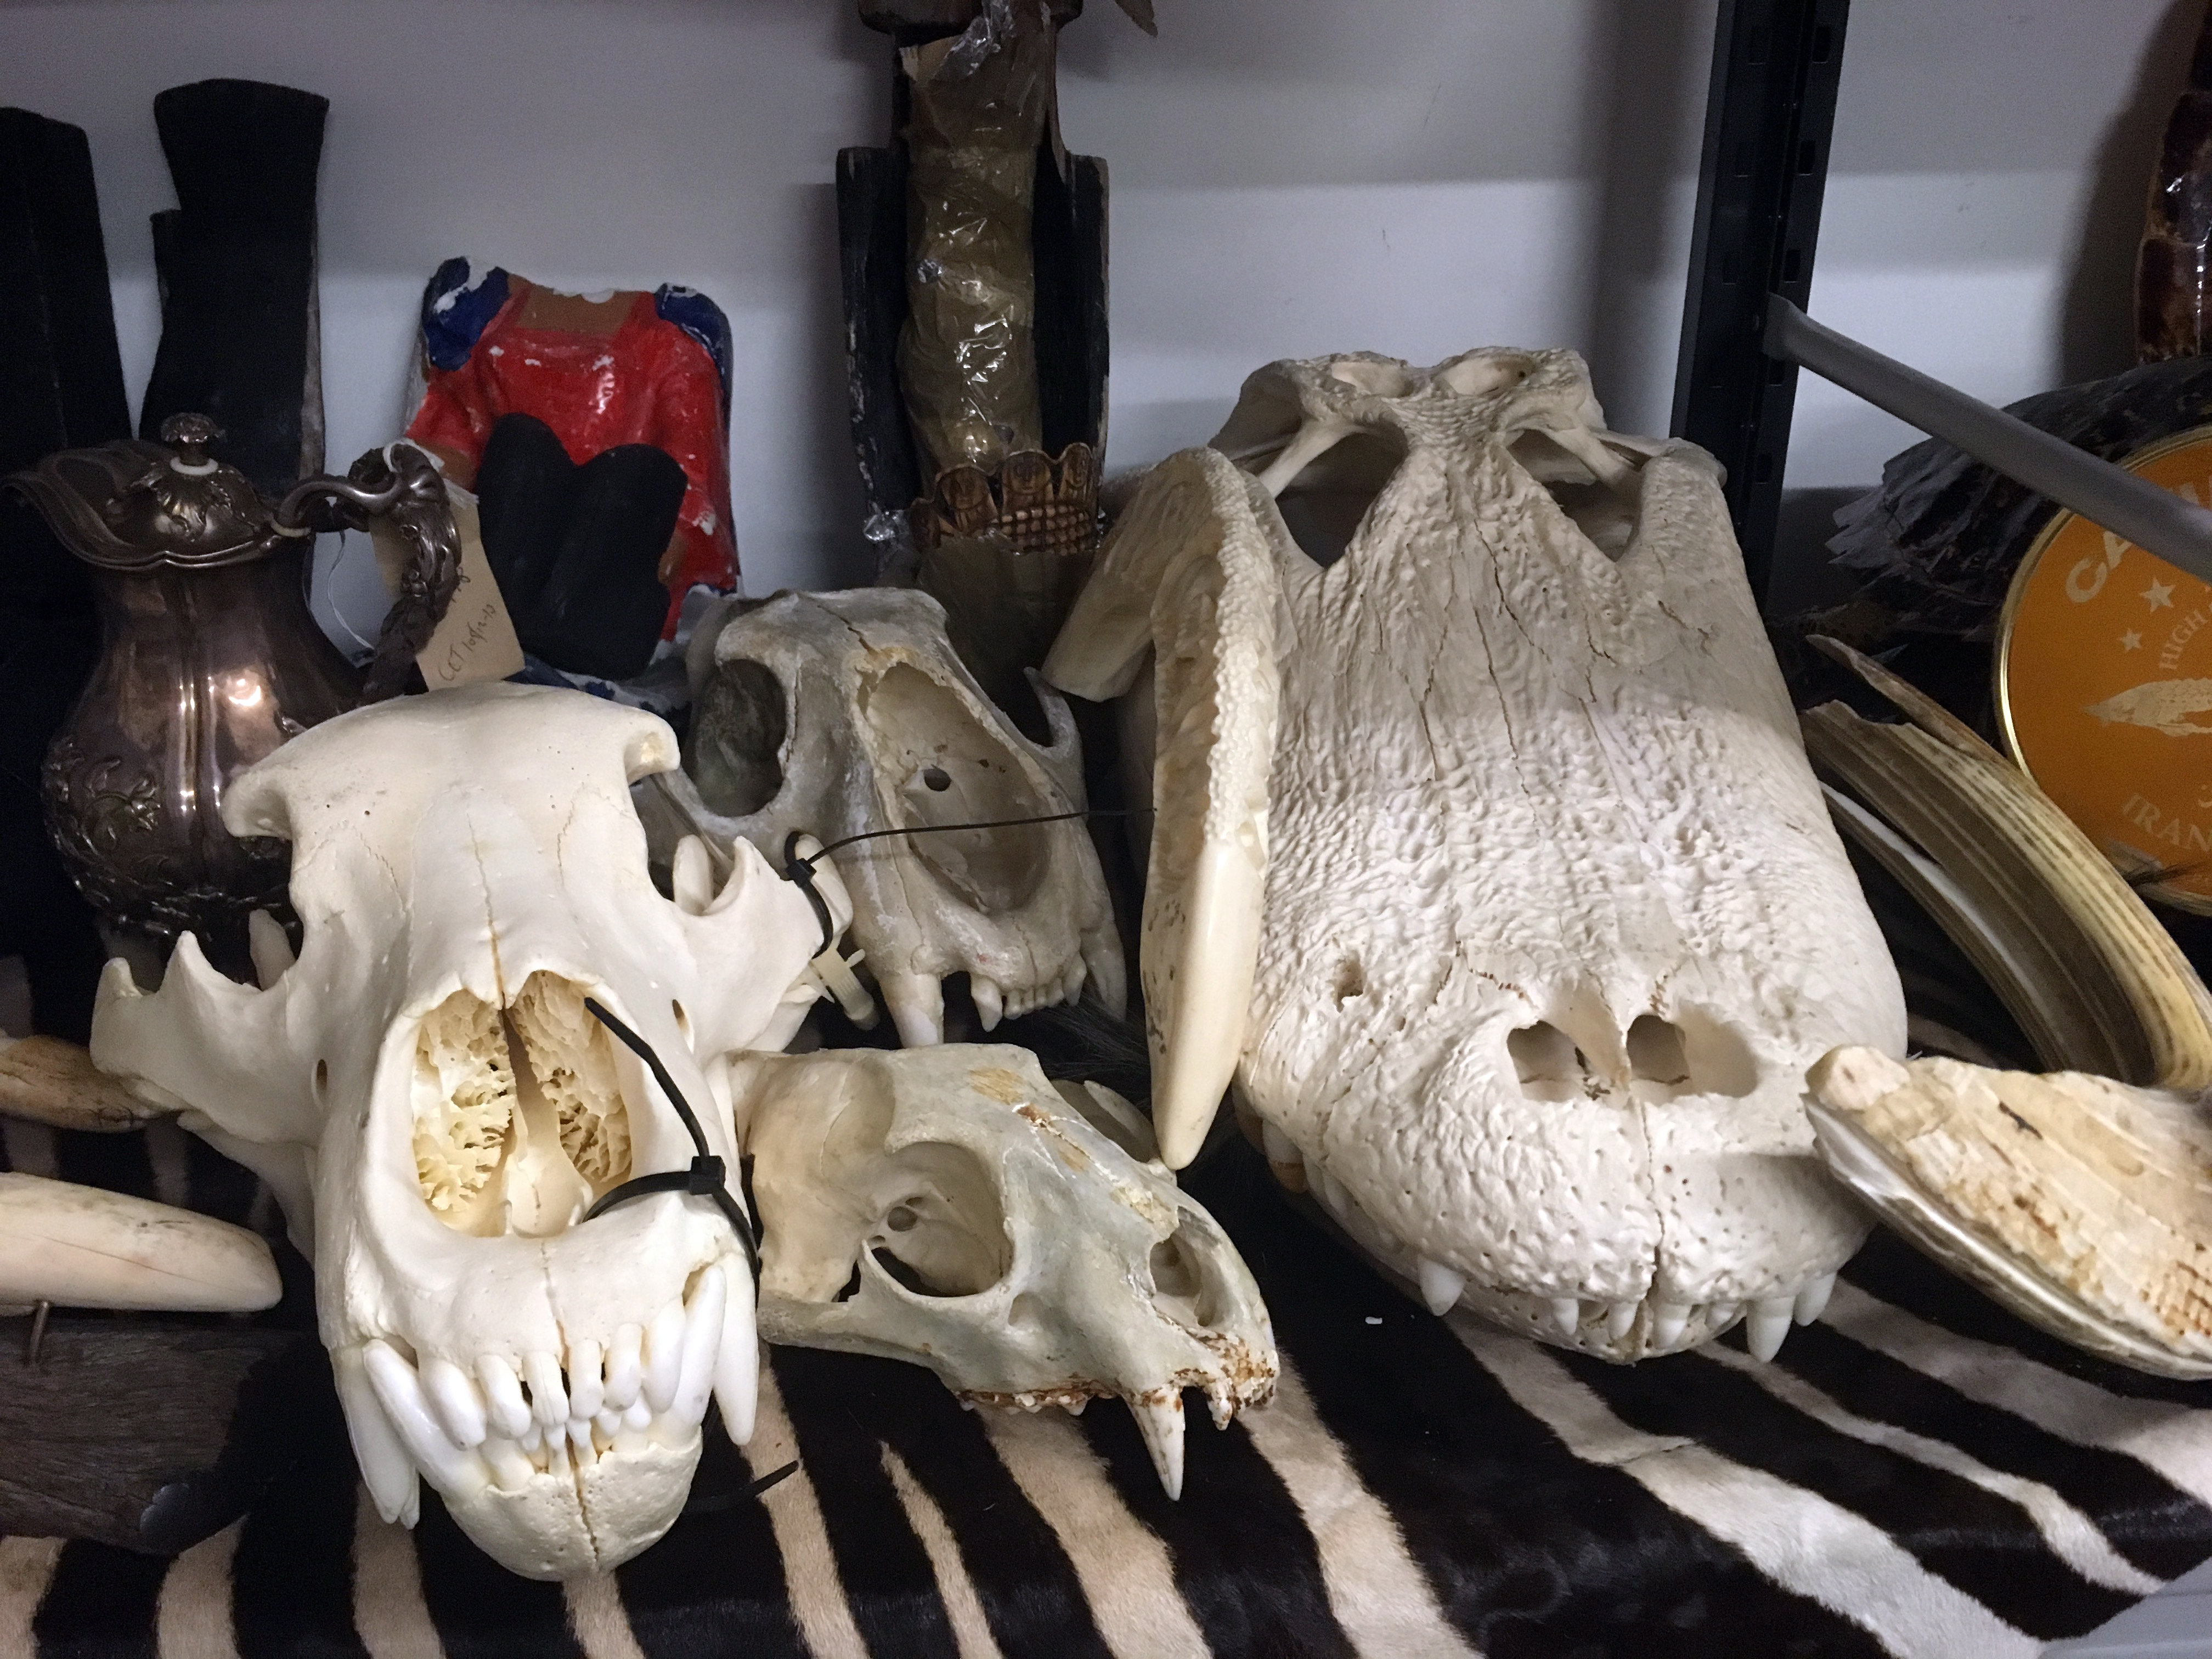 Reptile skins and skulls apprehended at Heathrow.